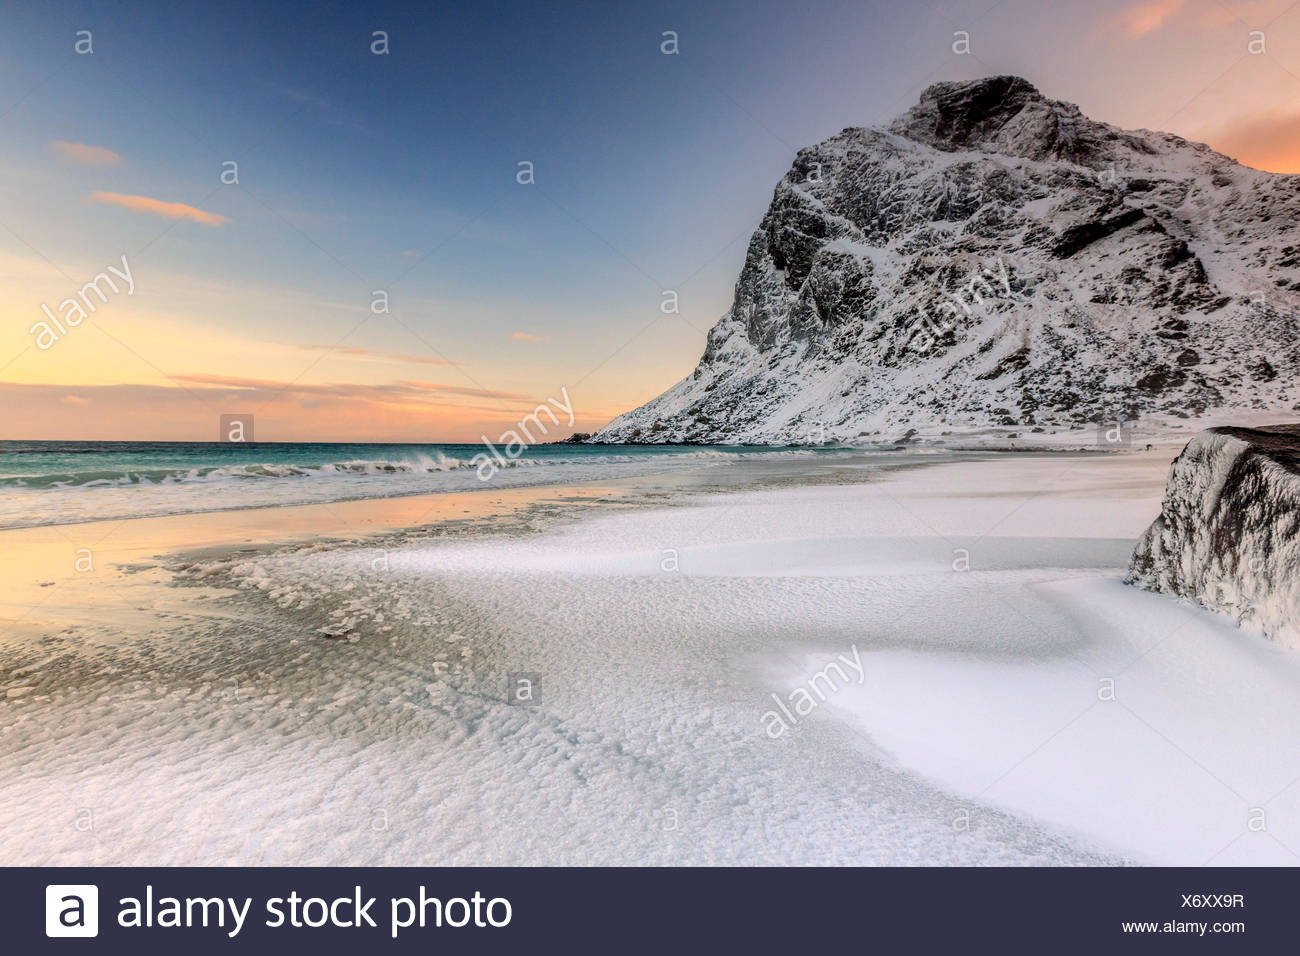 Waves advances towards the shore of the beach surrounded by snowy peaks at dawn. Uttakleiv Lofoten Islands Norway Europe - Stock Image